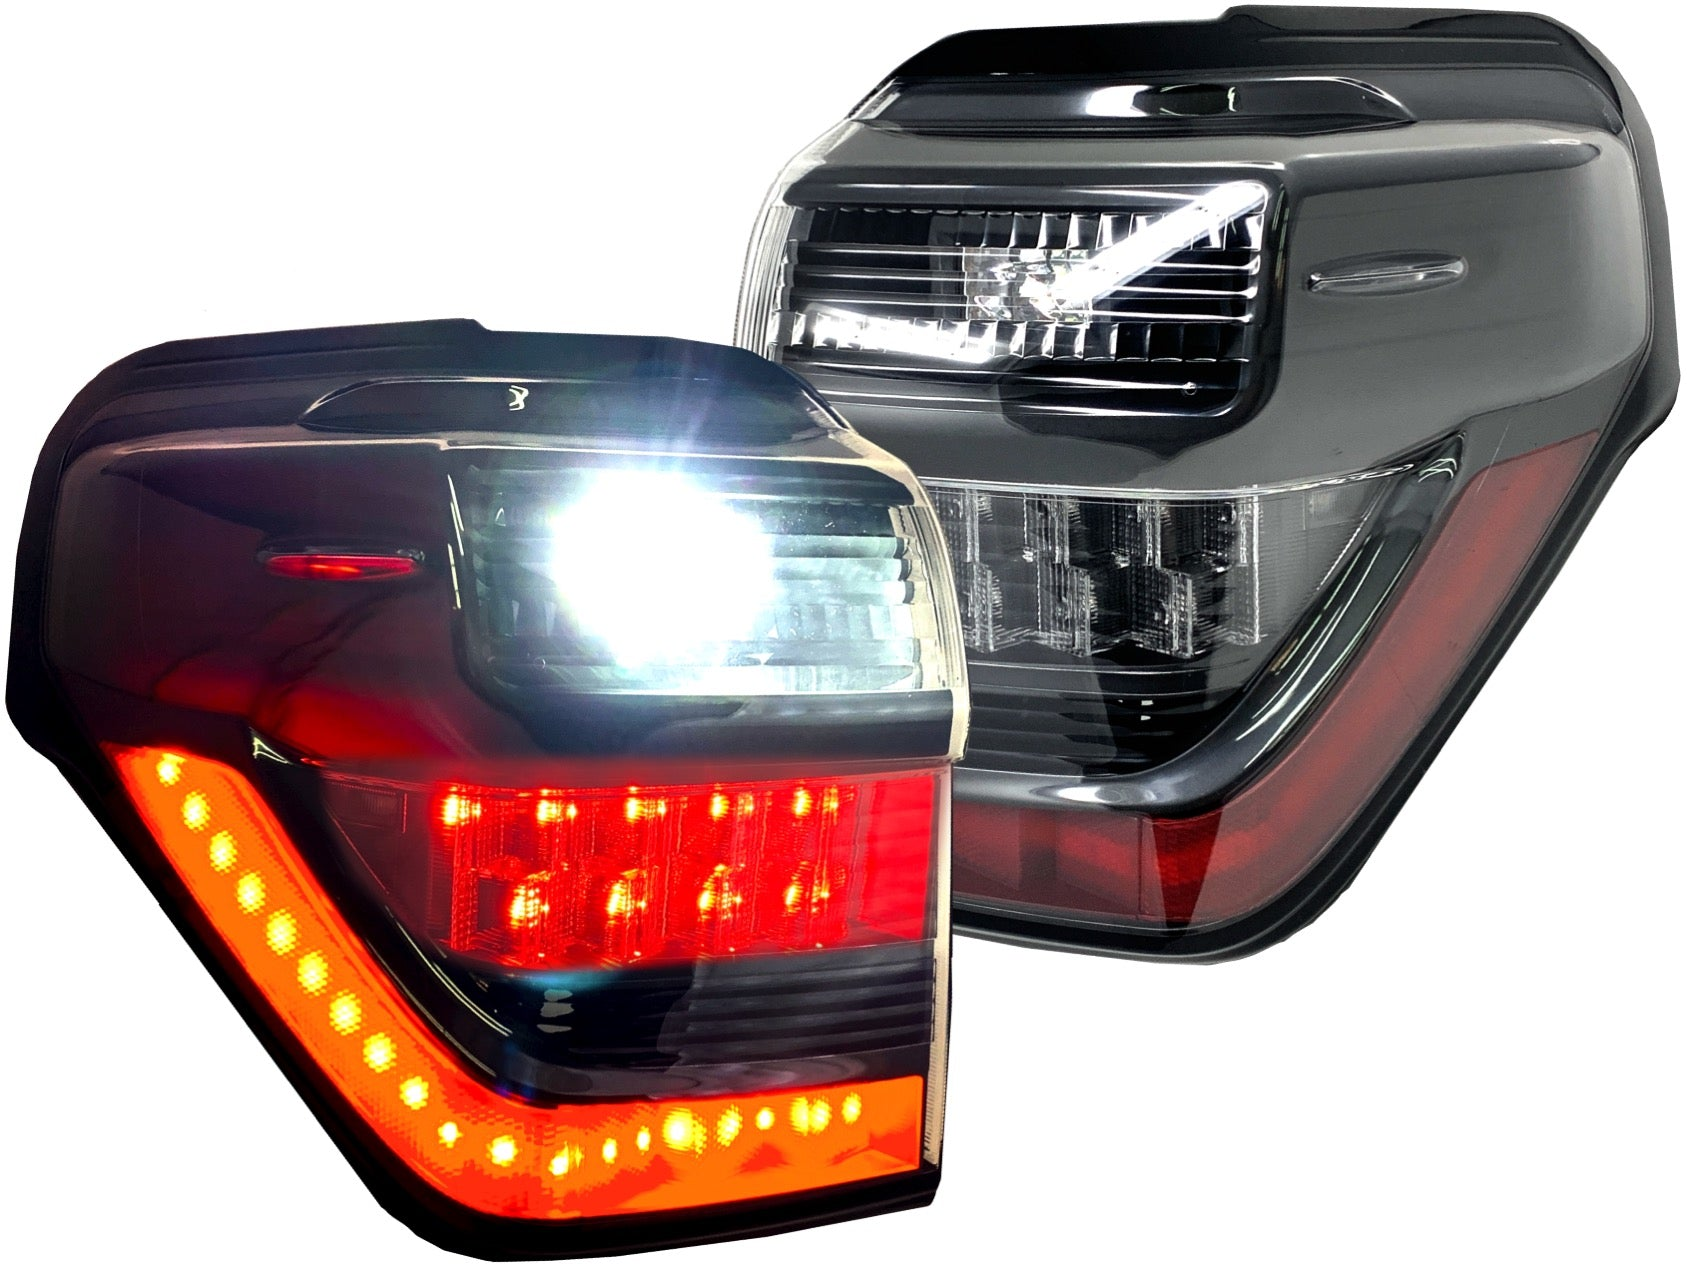 HID Retro Fit Kit - OLED BLACK LED TAIL LIGHTS - TOYOTA 4RUNNER 5th GEN 2010-2021 - 4x4 Runners